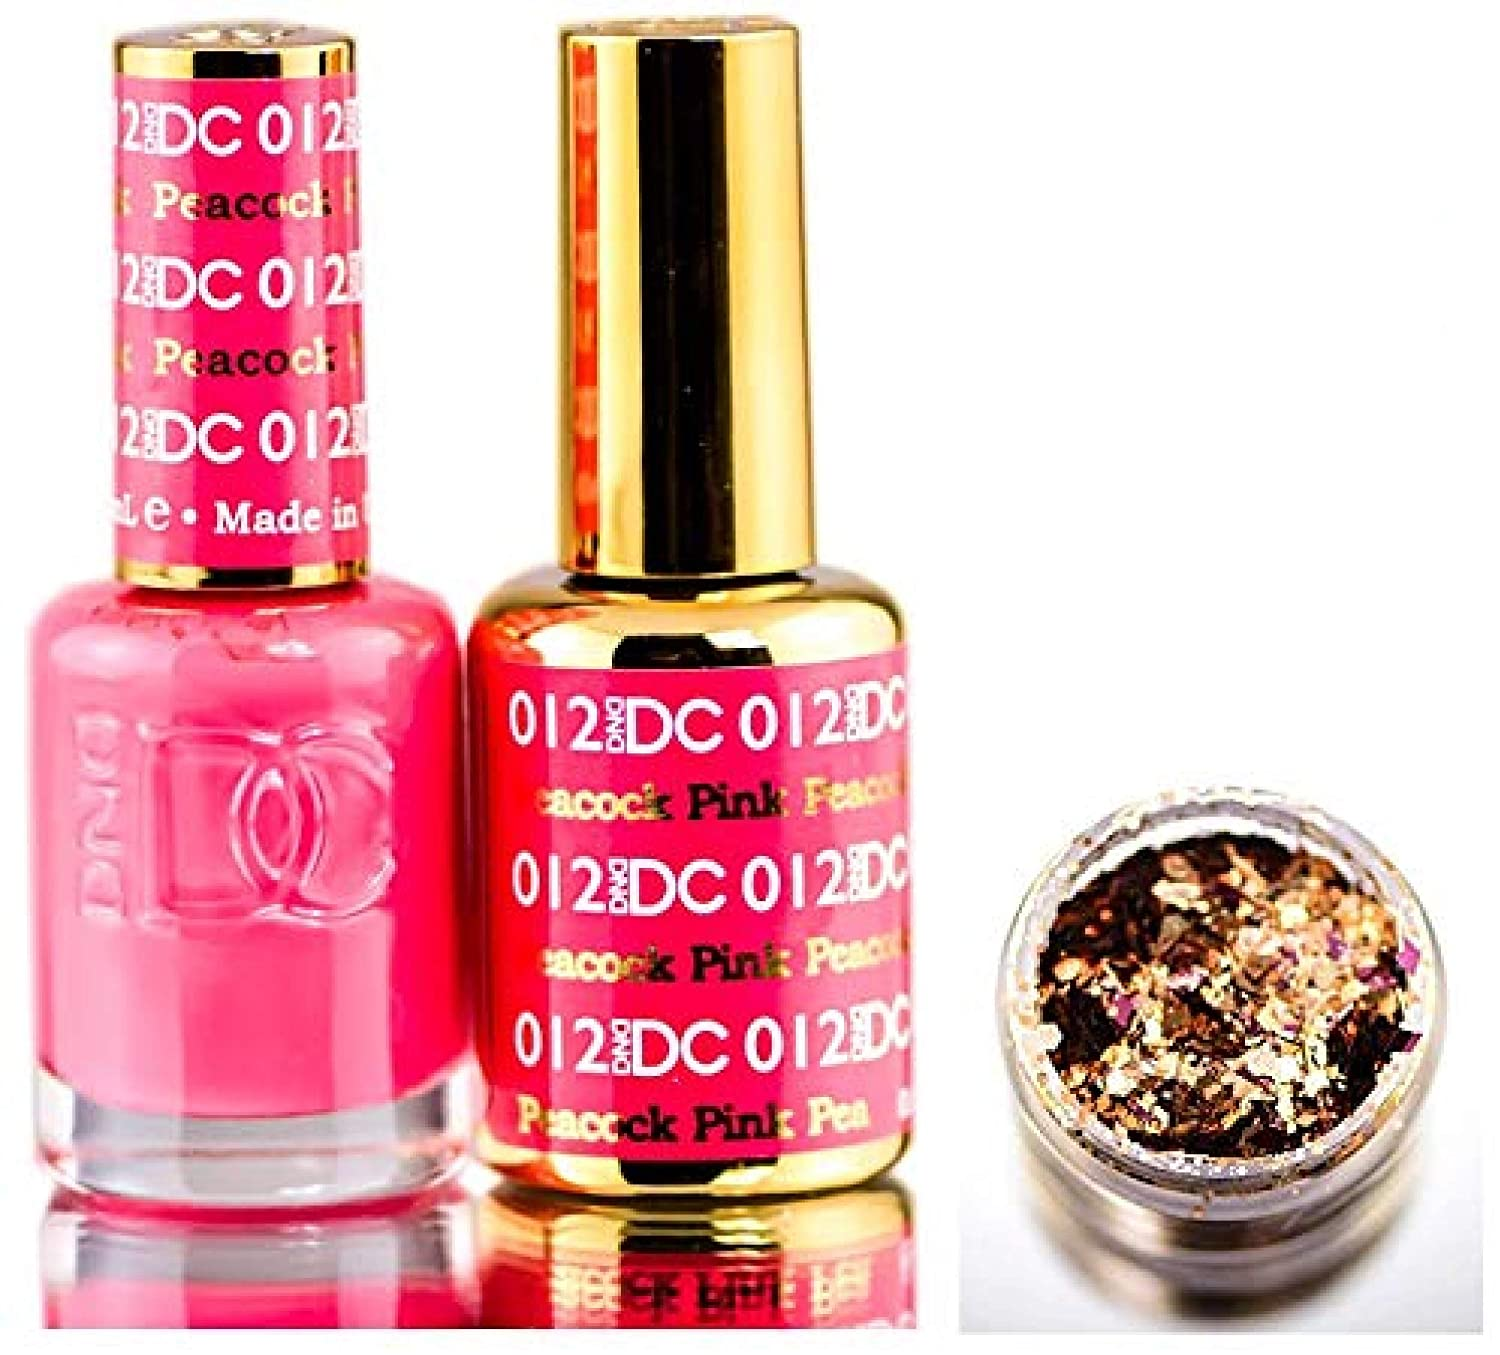 Amazon Com Dnd Dc Pinks Gel Polish Duo Gel Lacquer 0 5 Oz Matching Nail Polish Color 0 5 Oz Daisy Nails With Glitter Made In Usa Peacock Pink 012 Beauty